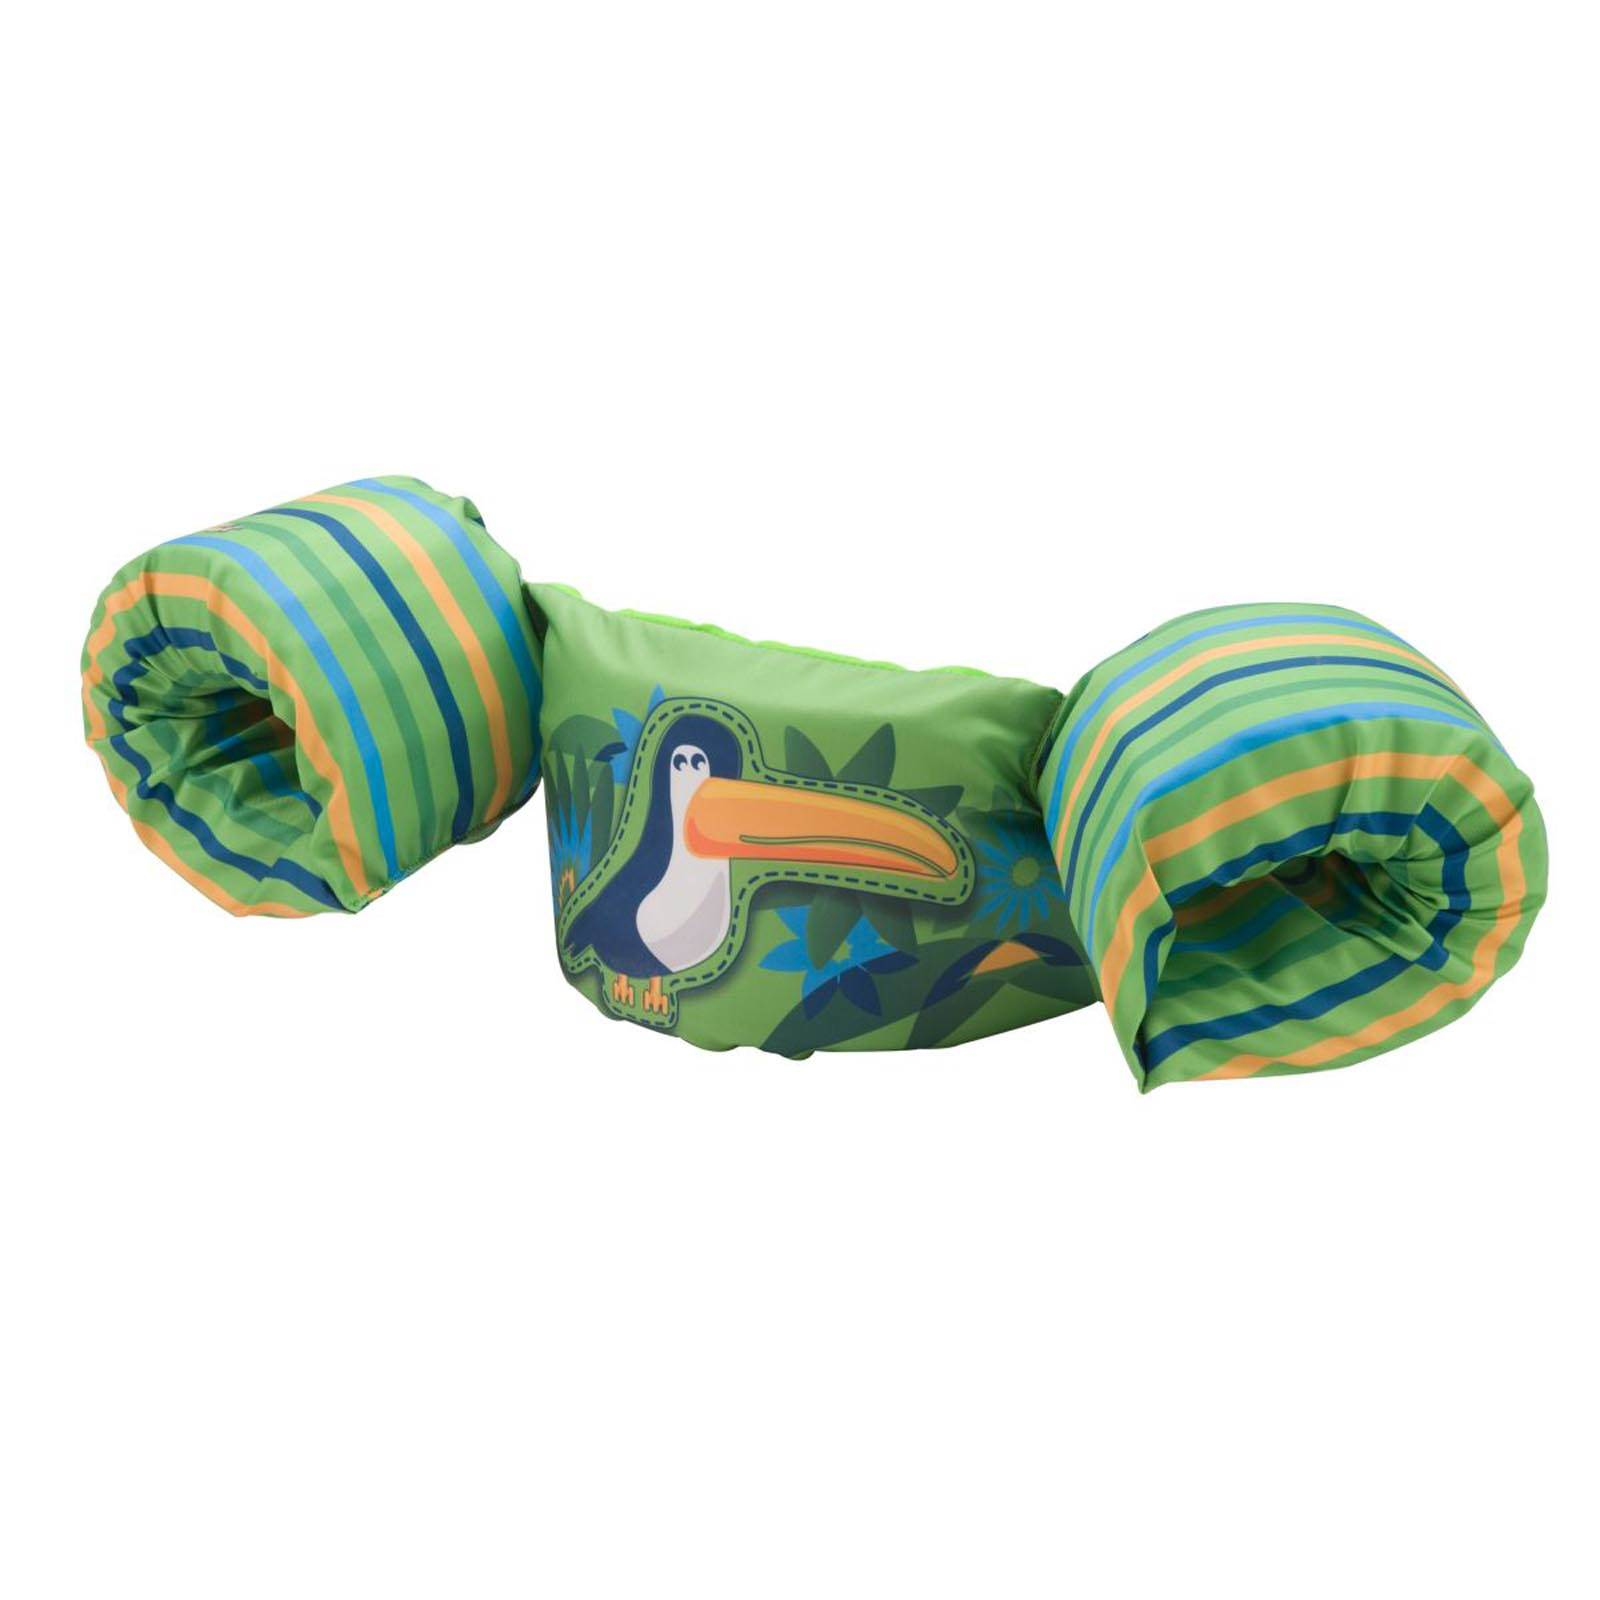 New Coleman Stearns Deluxe Kids Puddle Jumper Swimming Life Jacket Vest Toucan